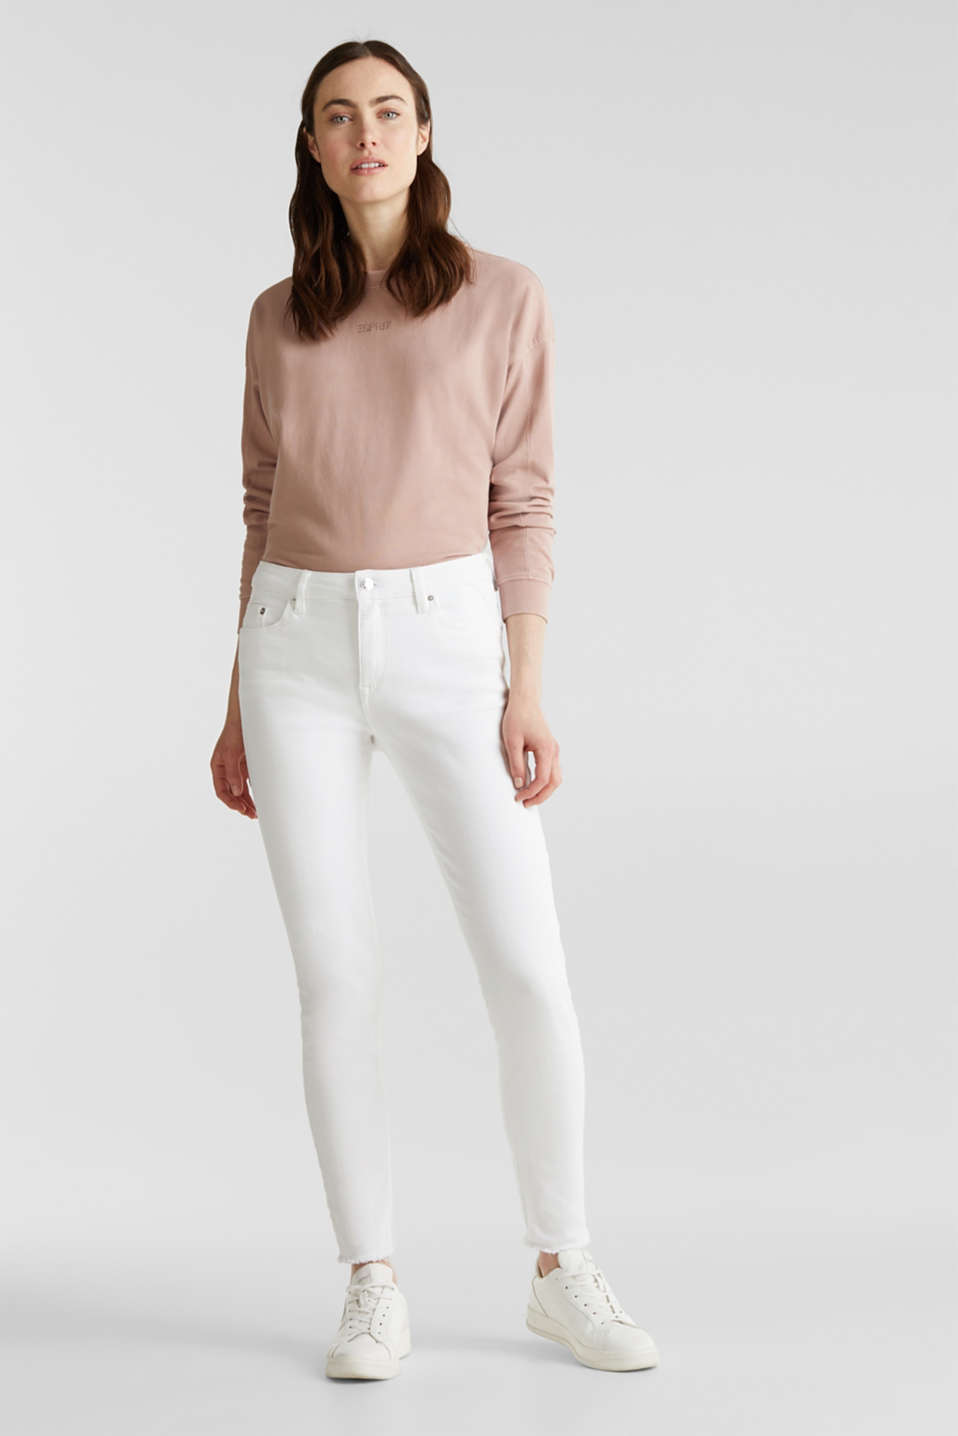 Esprit - Enkellange stretchbroek met organic cotton